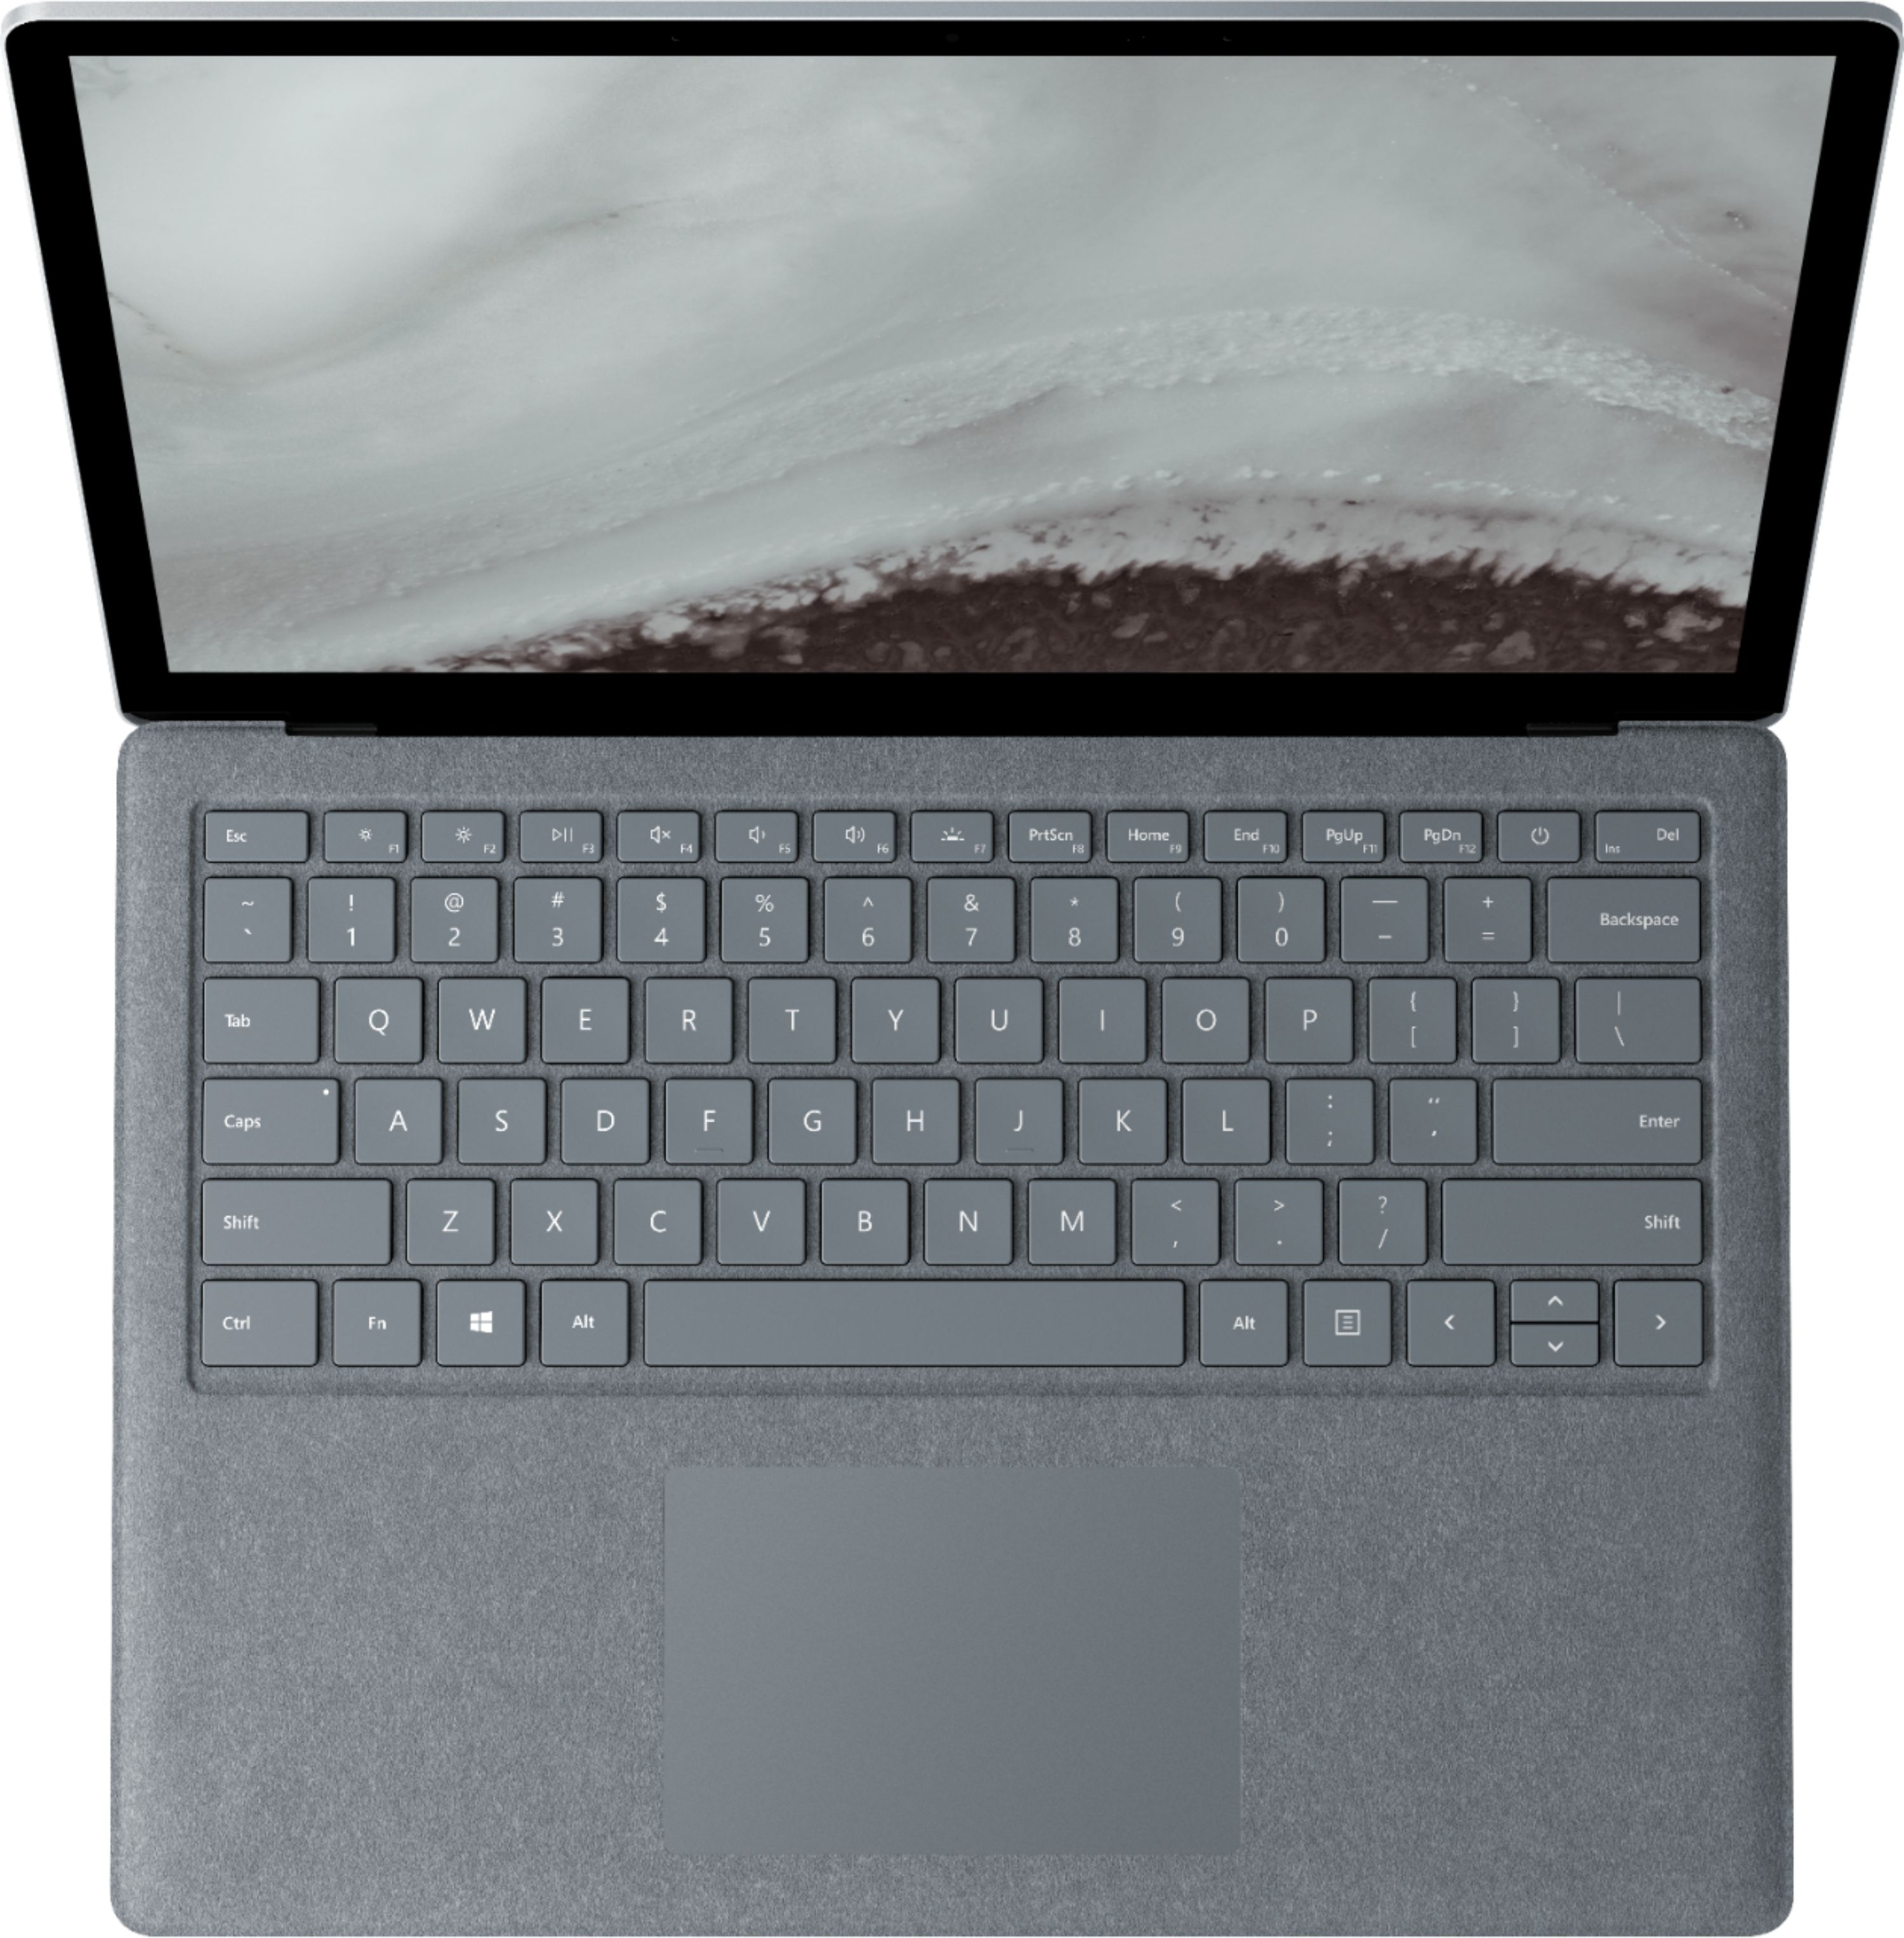 """Alt View Zoom 14. Microsoft - Geek Squad Certified Refurbished Surface Laptop 2 - 13.5"""" Touch Screen - Intel Core i5 - 8GB - 256GB SSD - Platinum."""